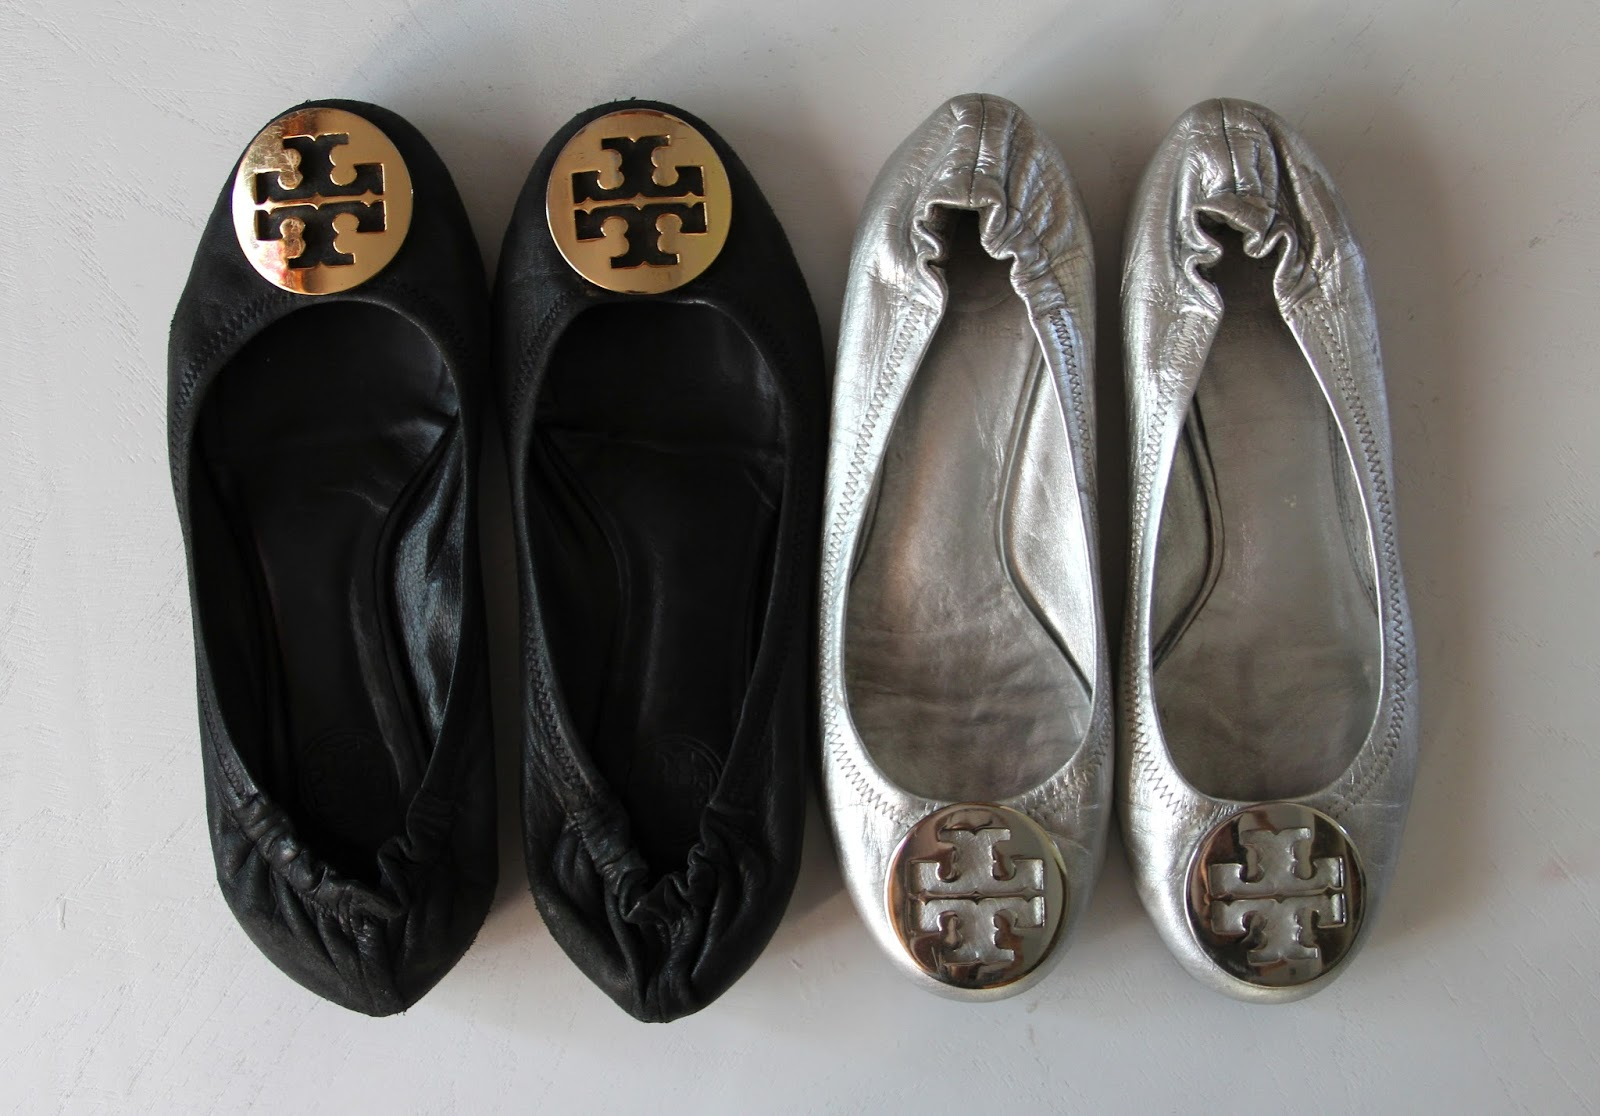 98d2cc2faeb Anyone who owns a pair of Tory Burch Reva flats knows that I m not  exaggerating when I say they are one of the comfiest flats out there that  also look super ...